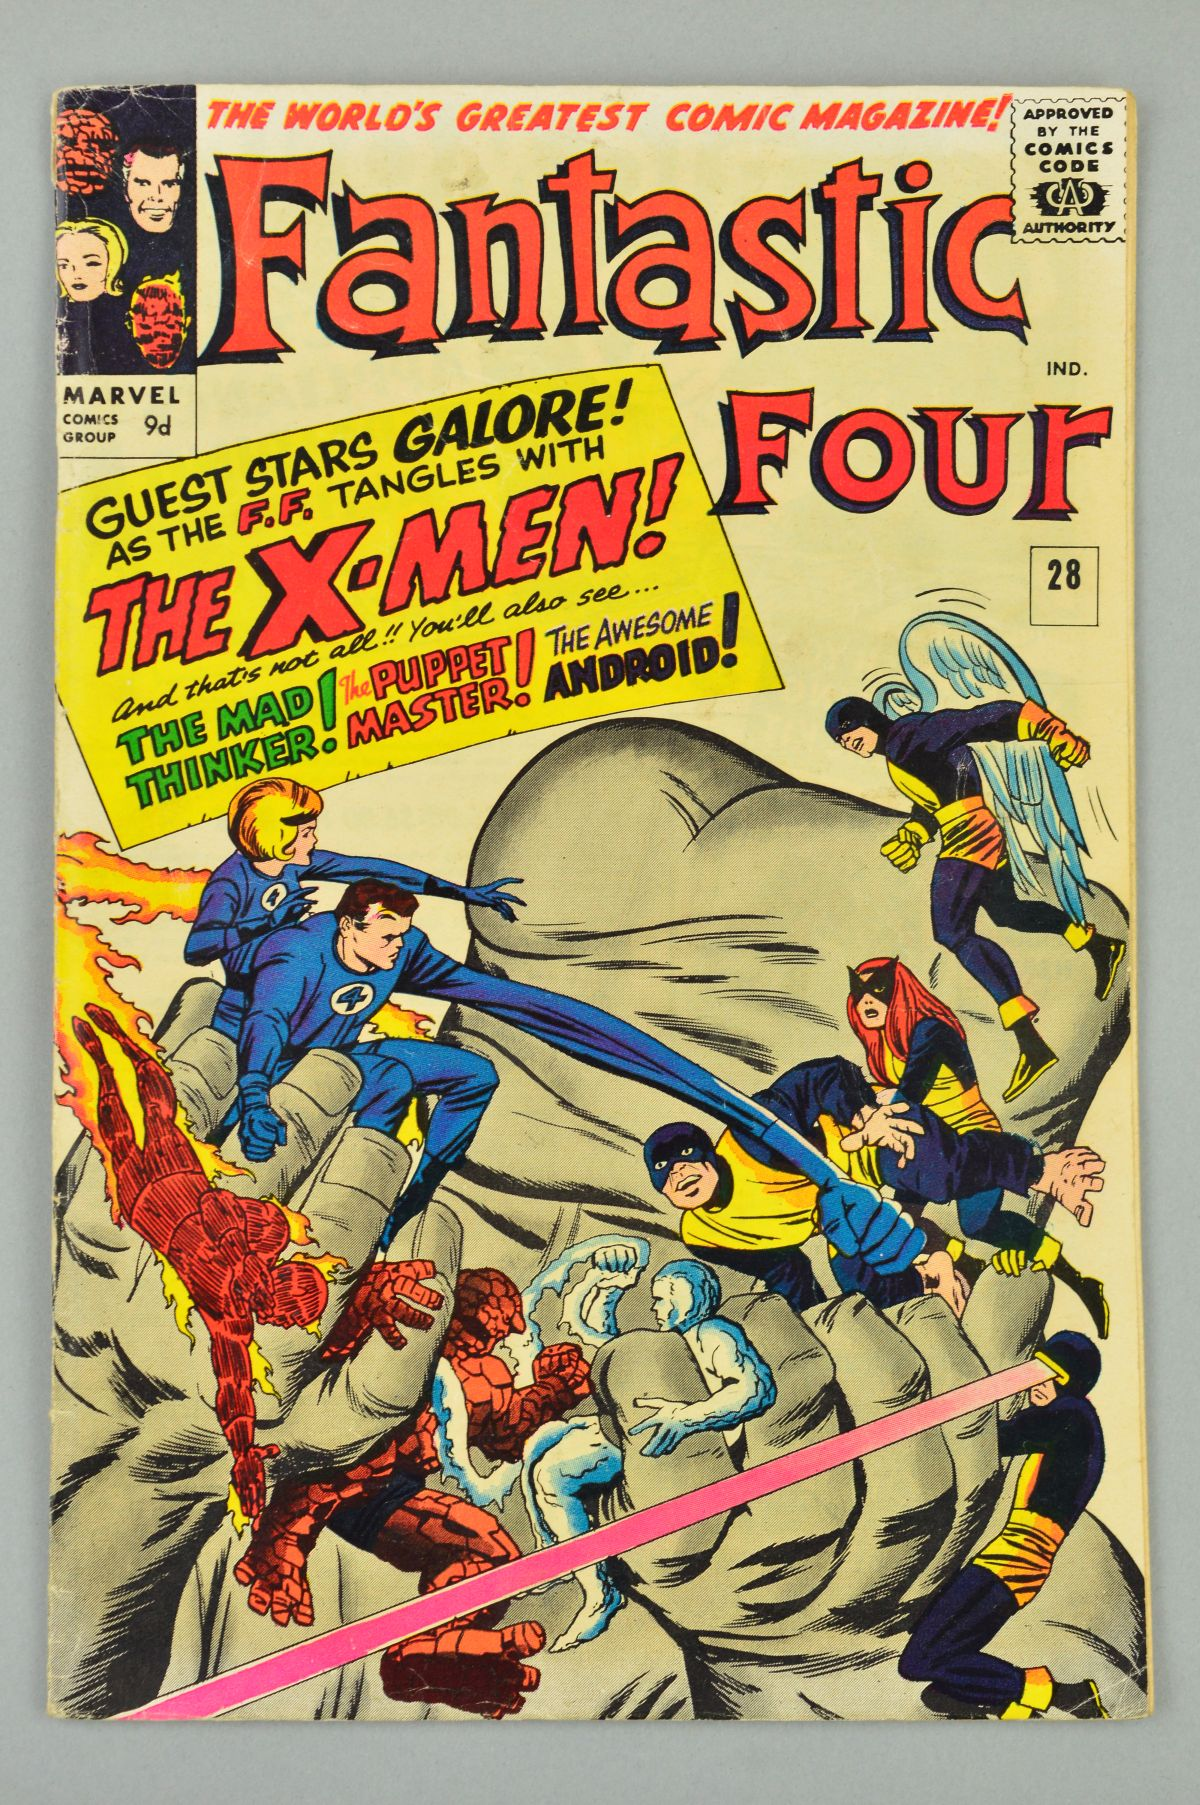 Lot 1828 - Fantastic Four (1961) #28, Published:July 10, 1964, The X-Men guest-star as they and the Fantastic